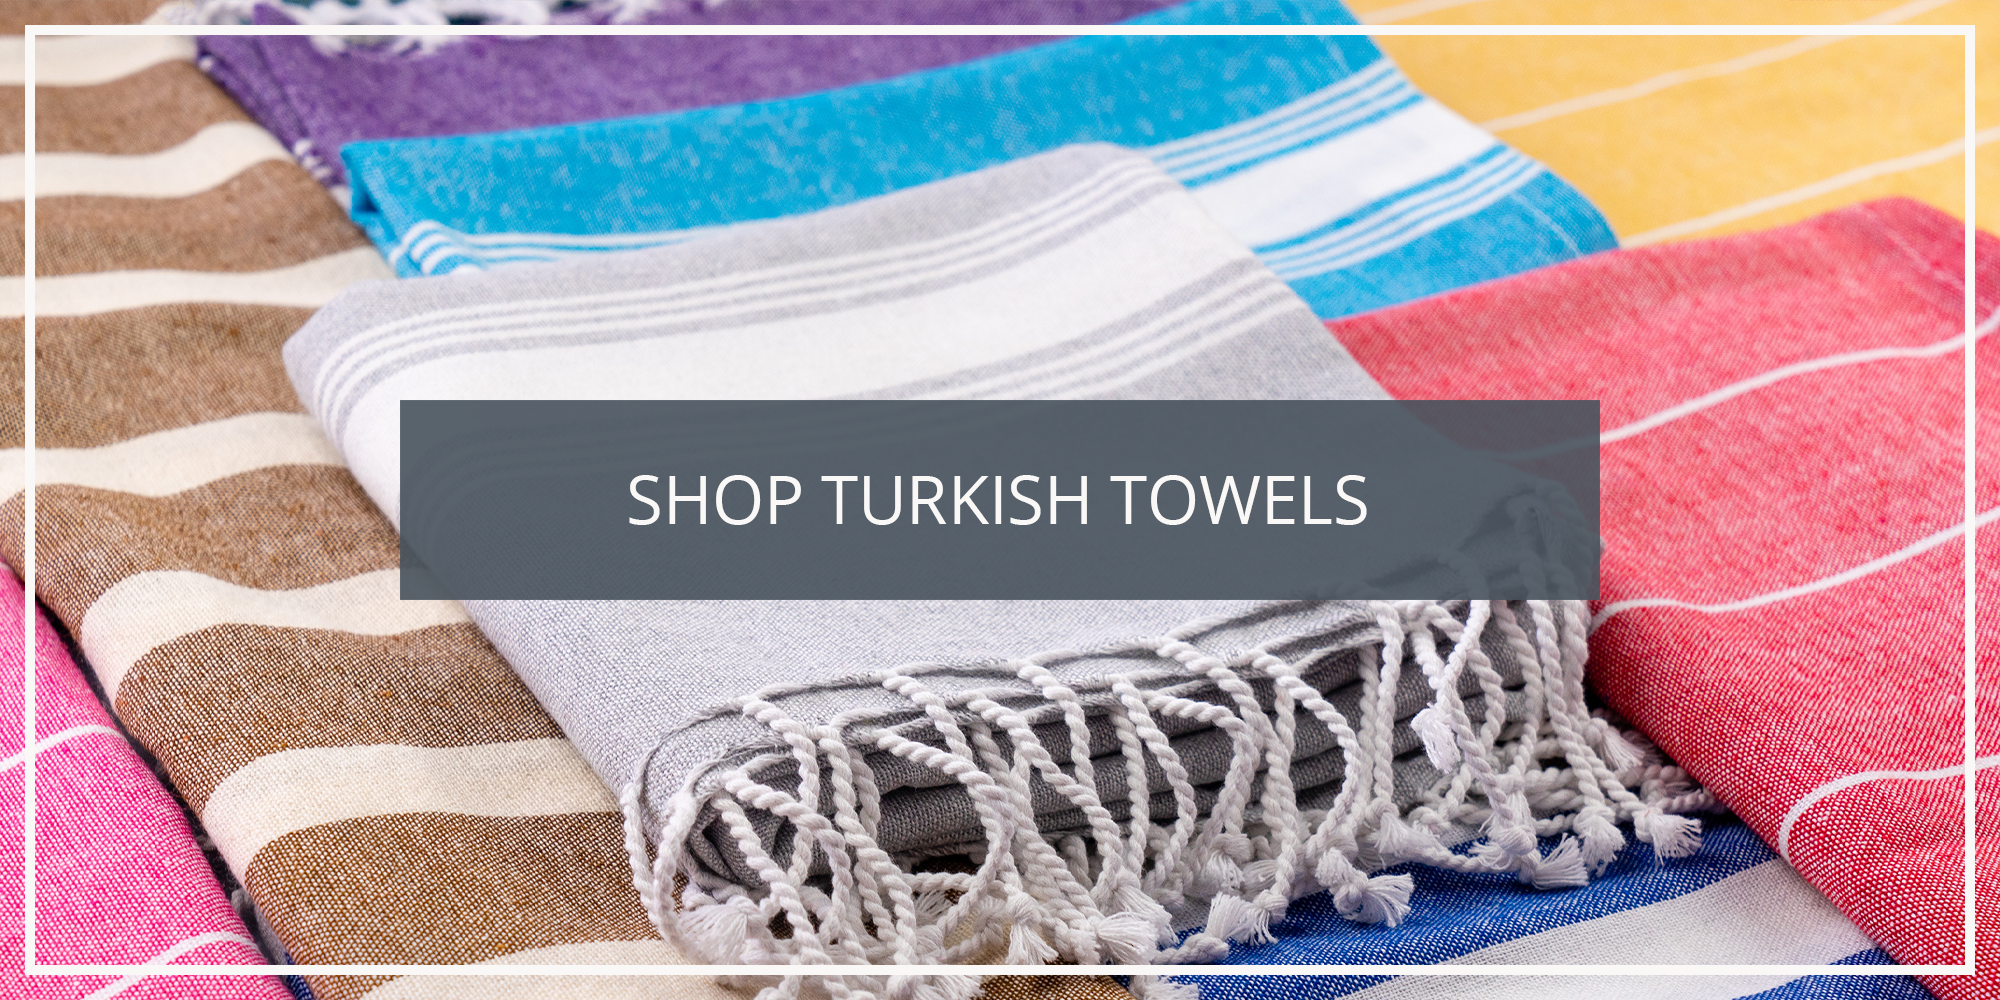 Shop the Nicola Spring Turkish Cotton Beach Bath Towels Collection